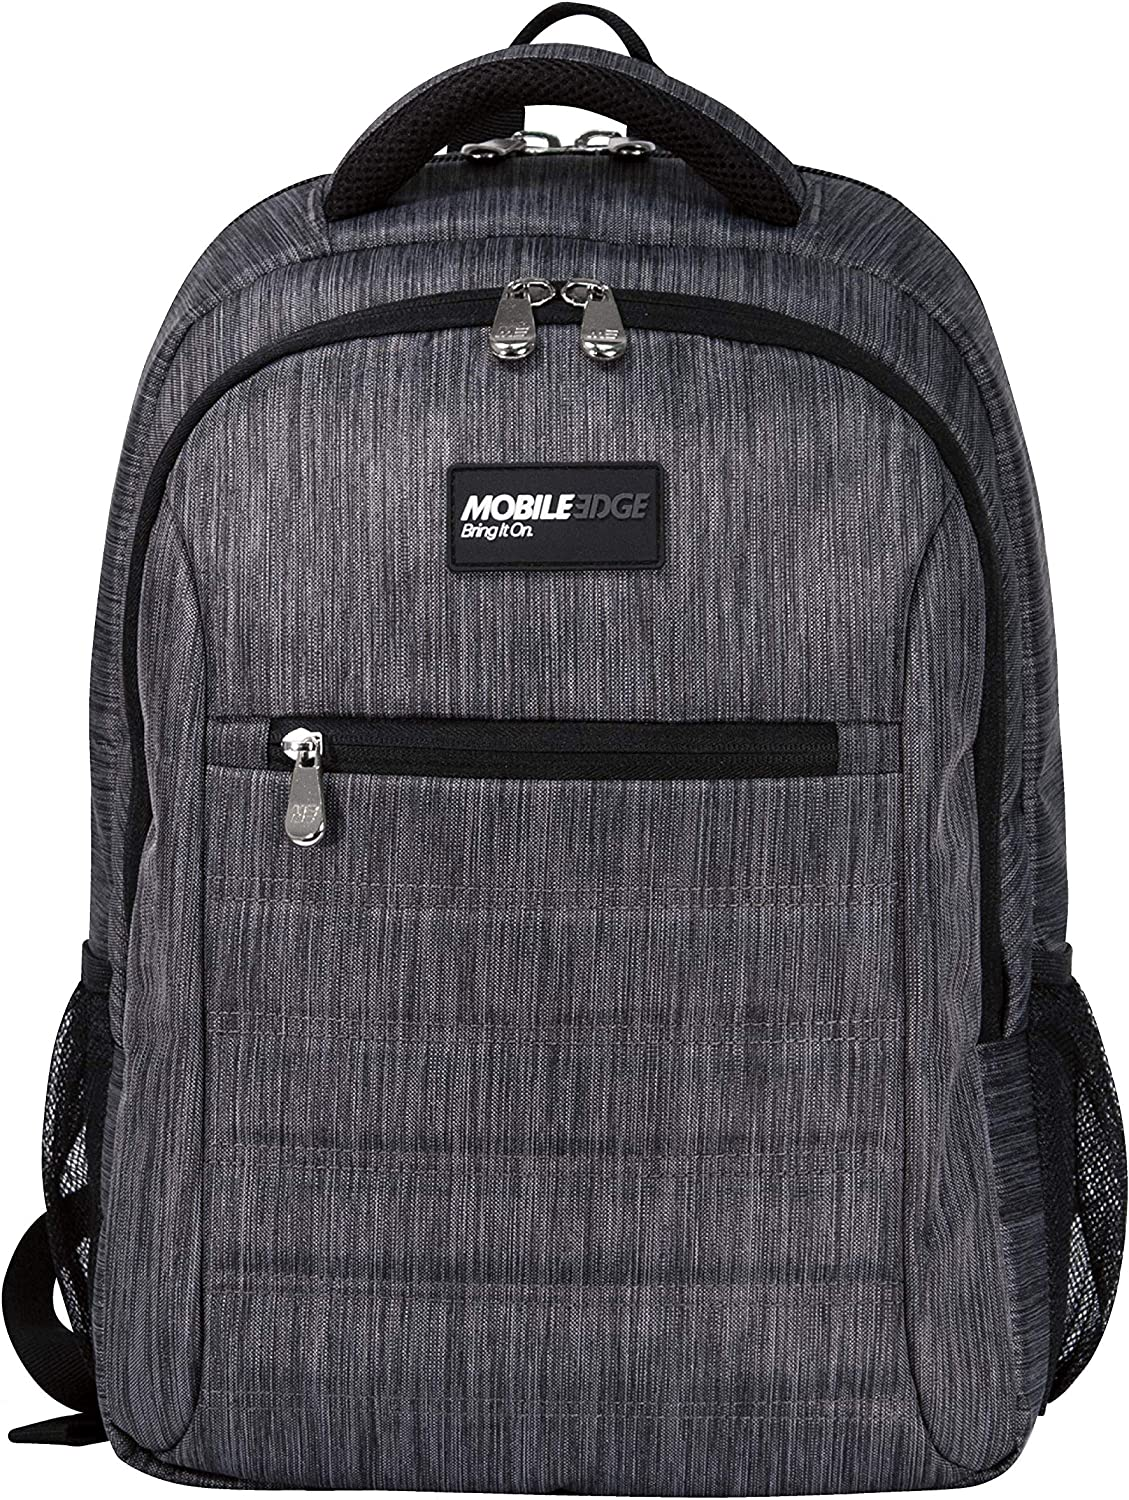 Mobile Edge Carbon SmartPack 16 Inch Laptop Backpack with Separate Padded Tablet Pocket, Lightweight Design for Men, Women, Students MEBPSP6, One Size